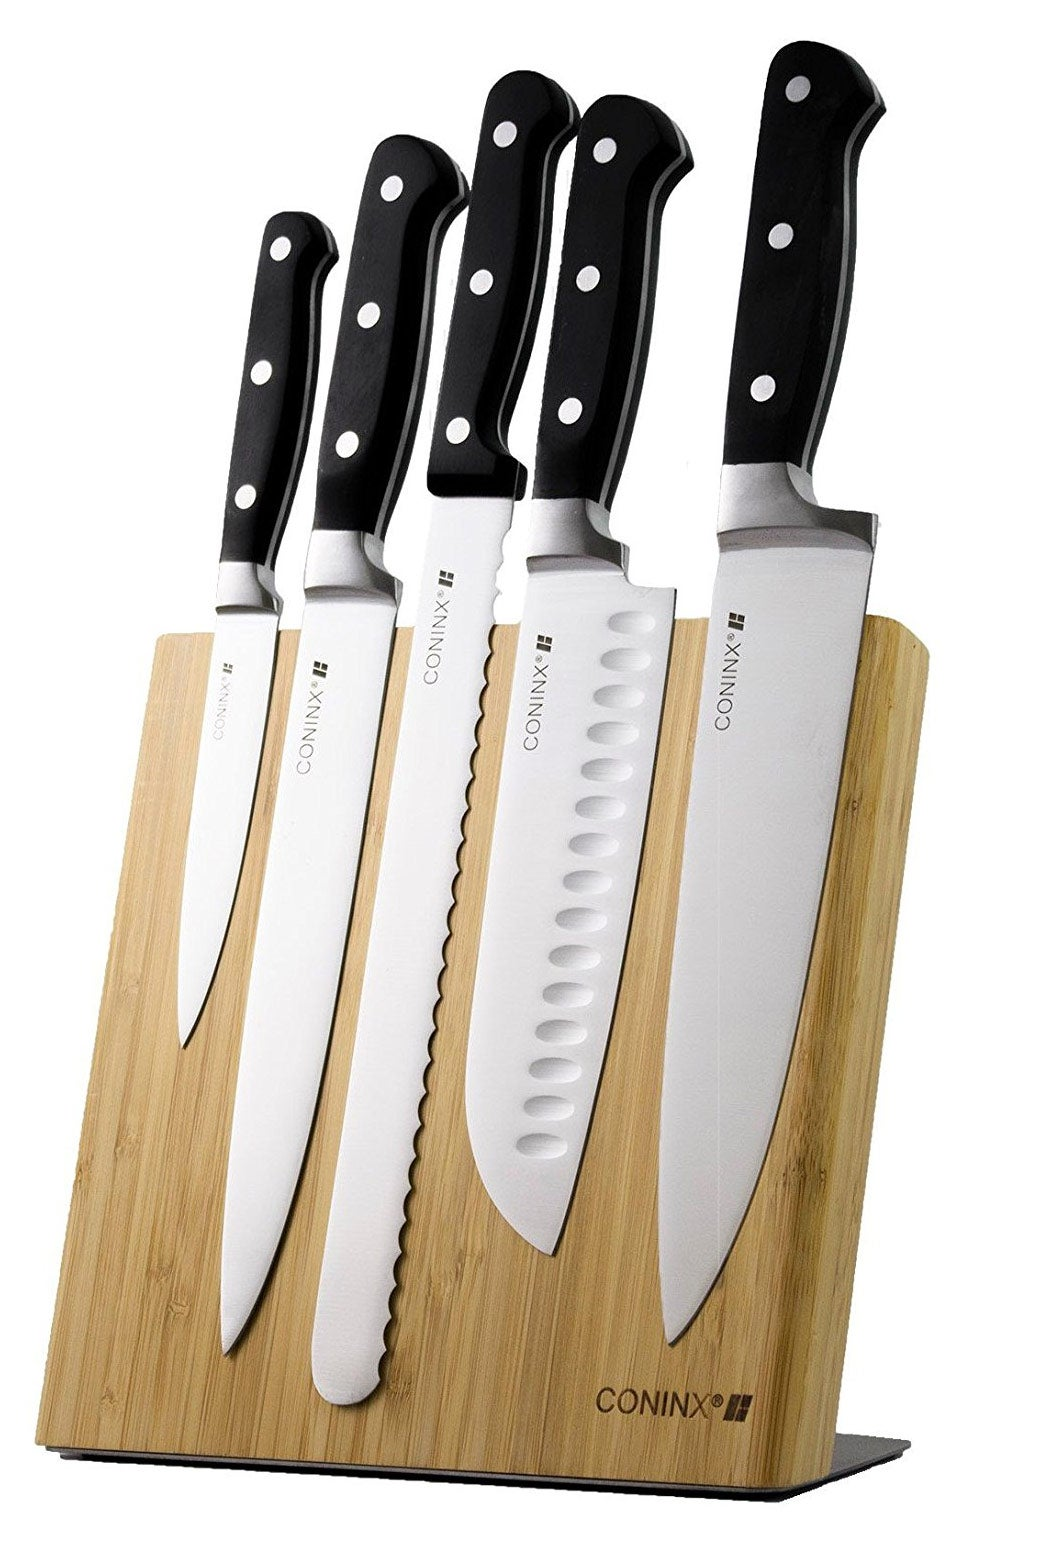 Coninx Magnetic Knife Block.